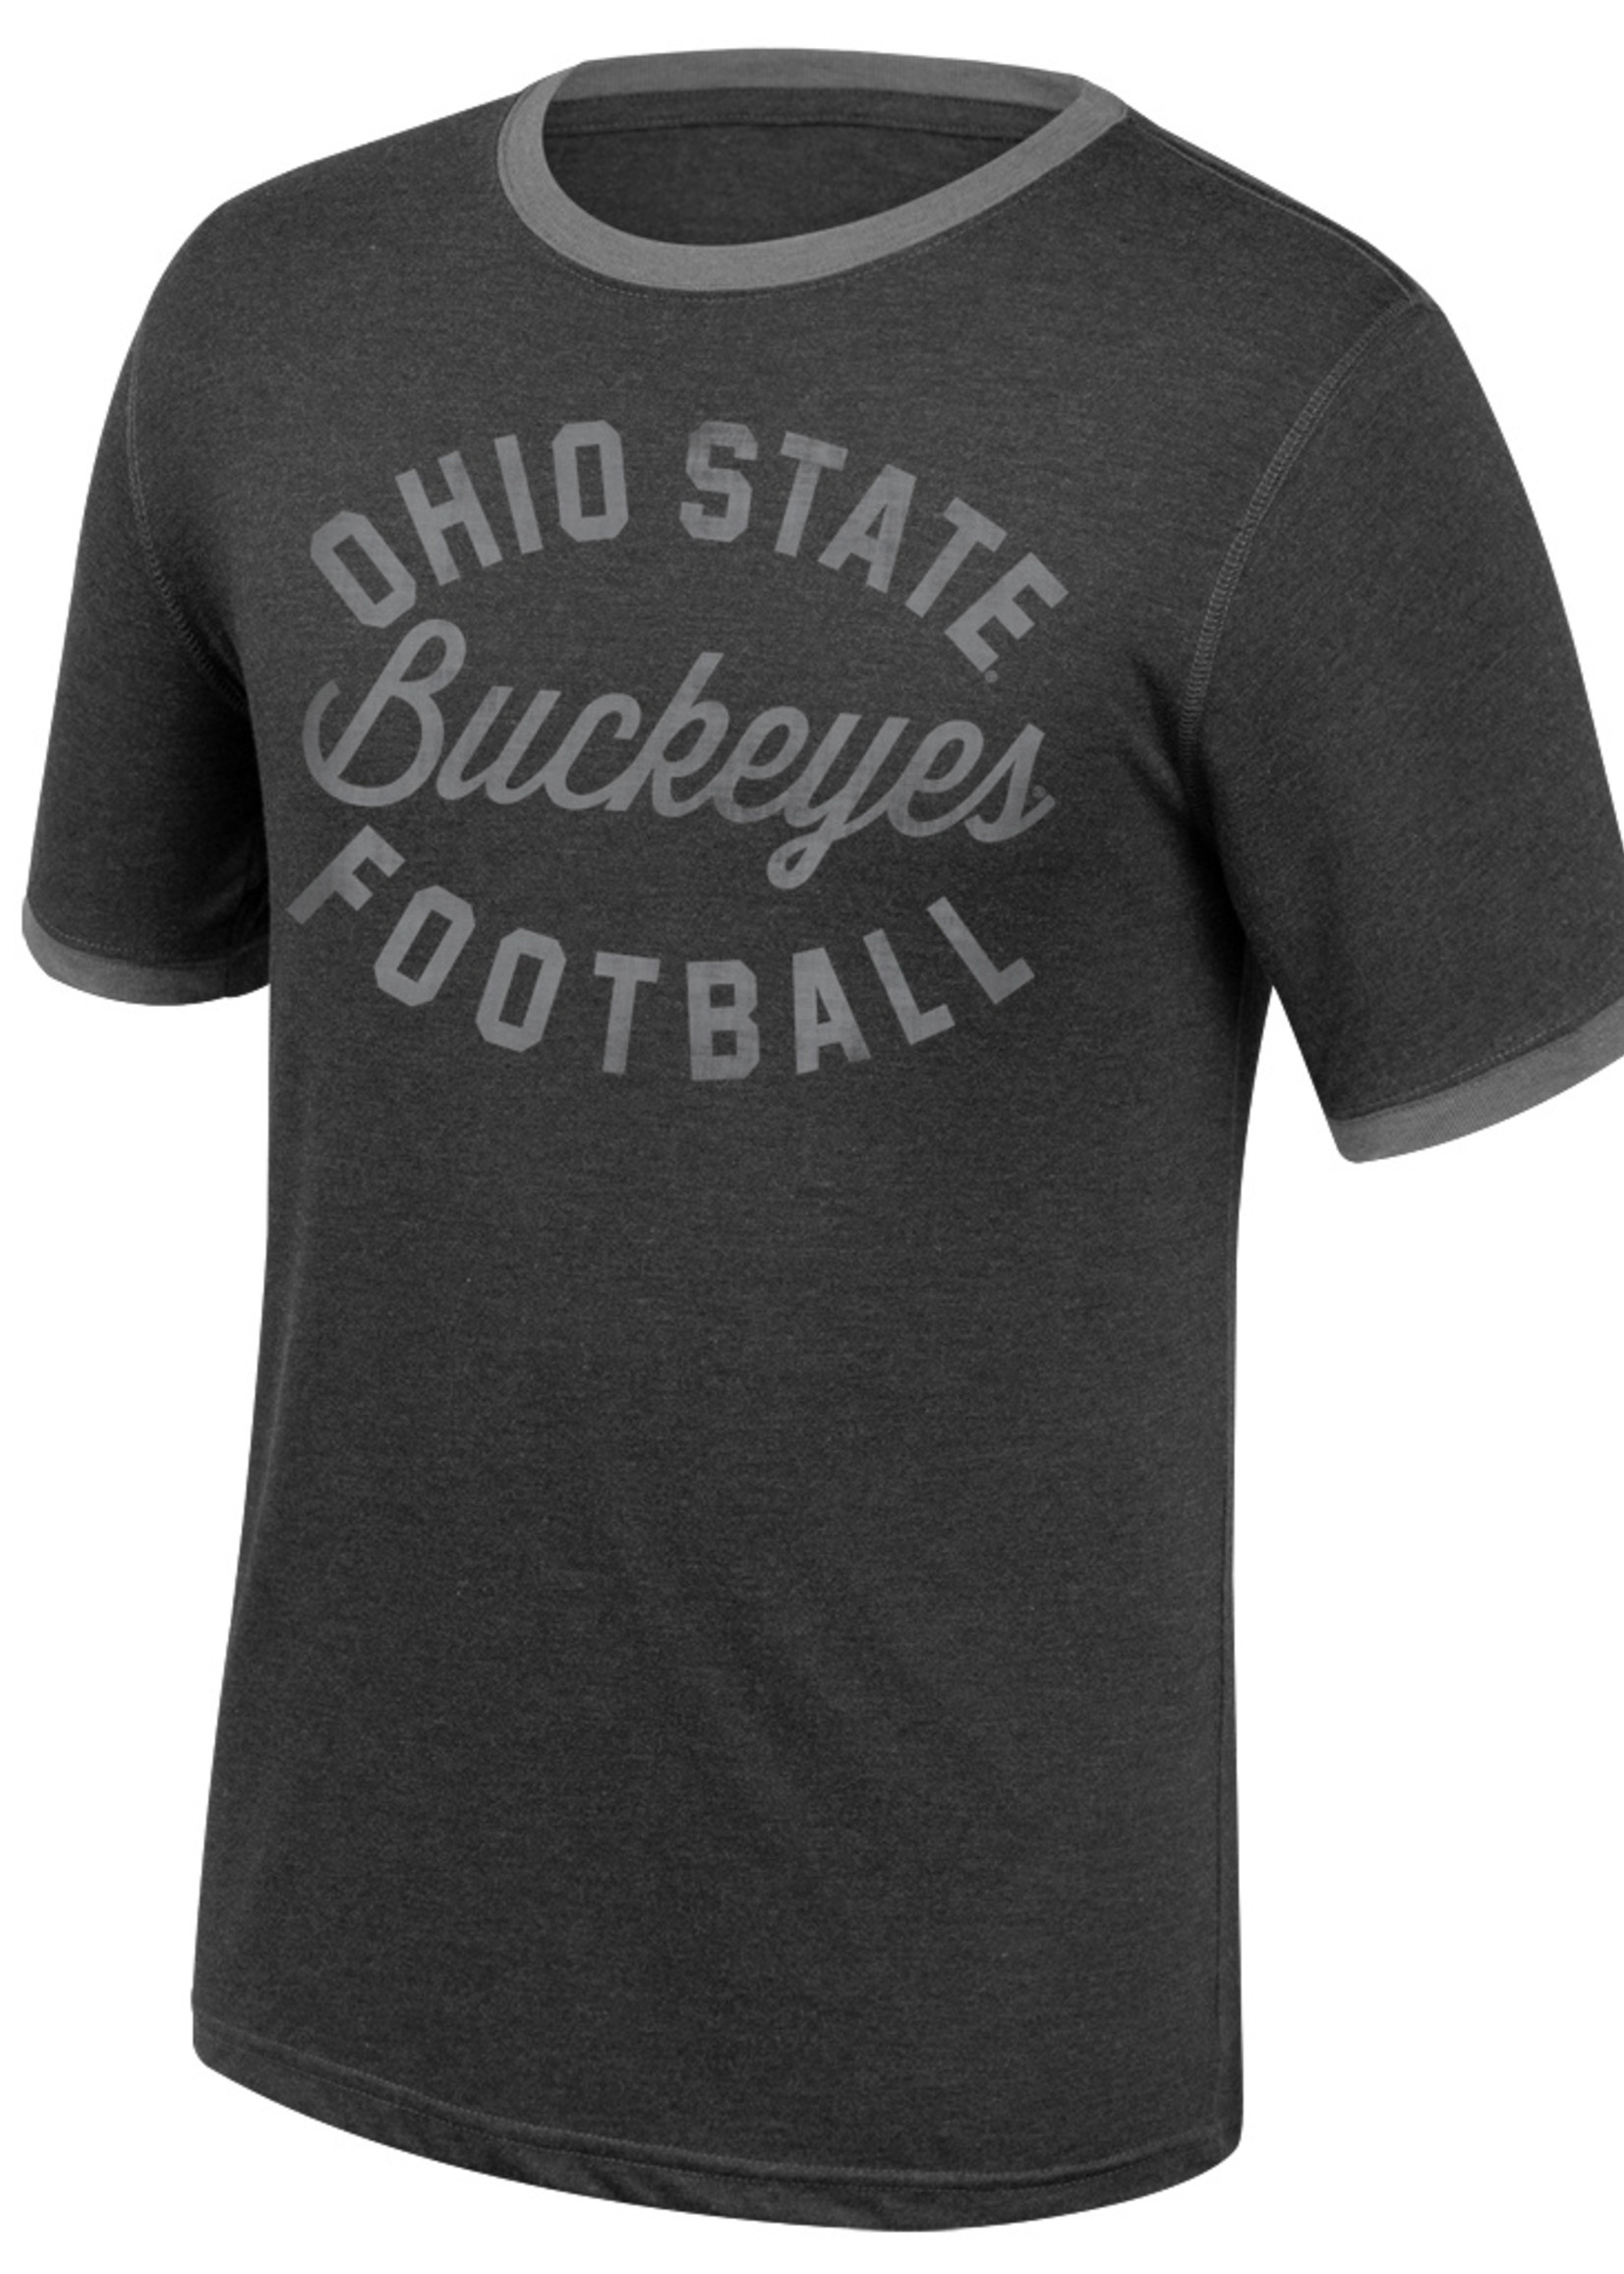 Top of the World Ohio State Buckeyes Football Ringer Tee